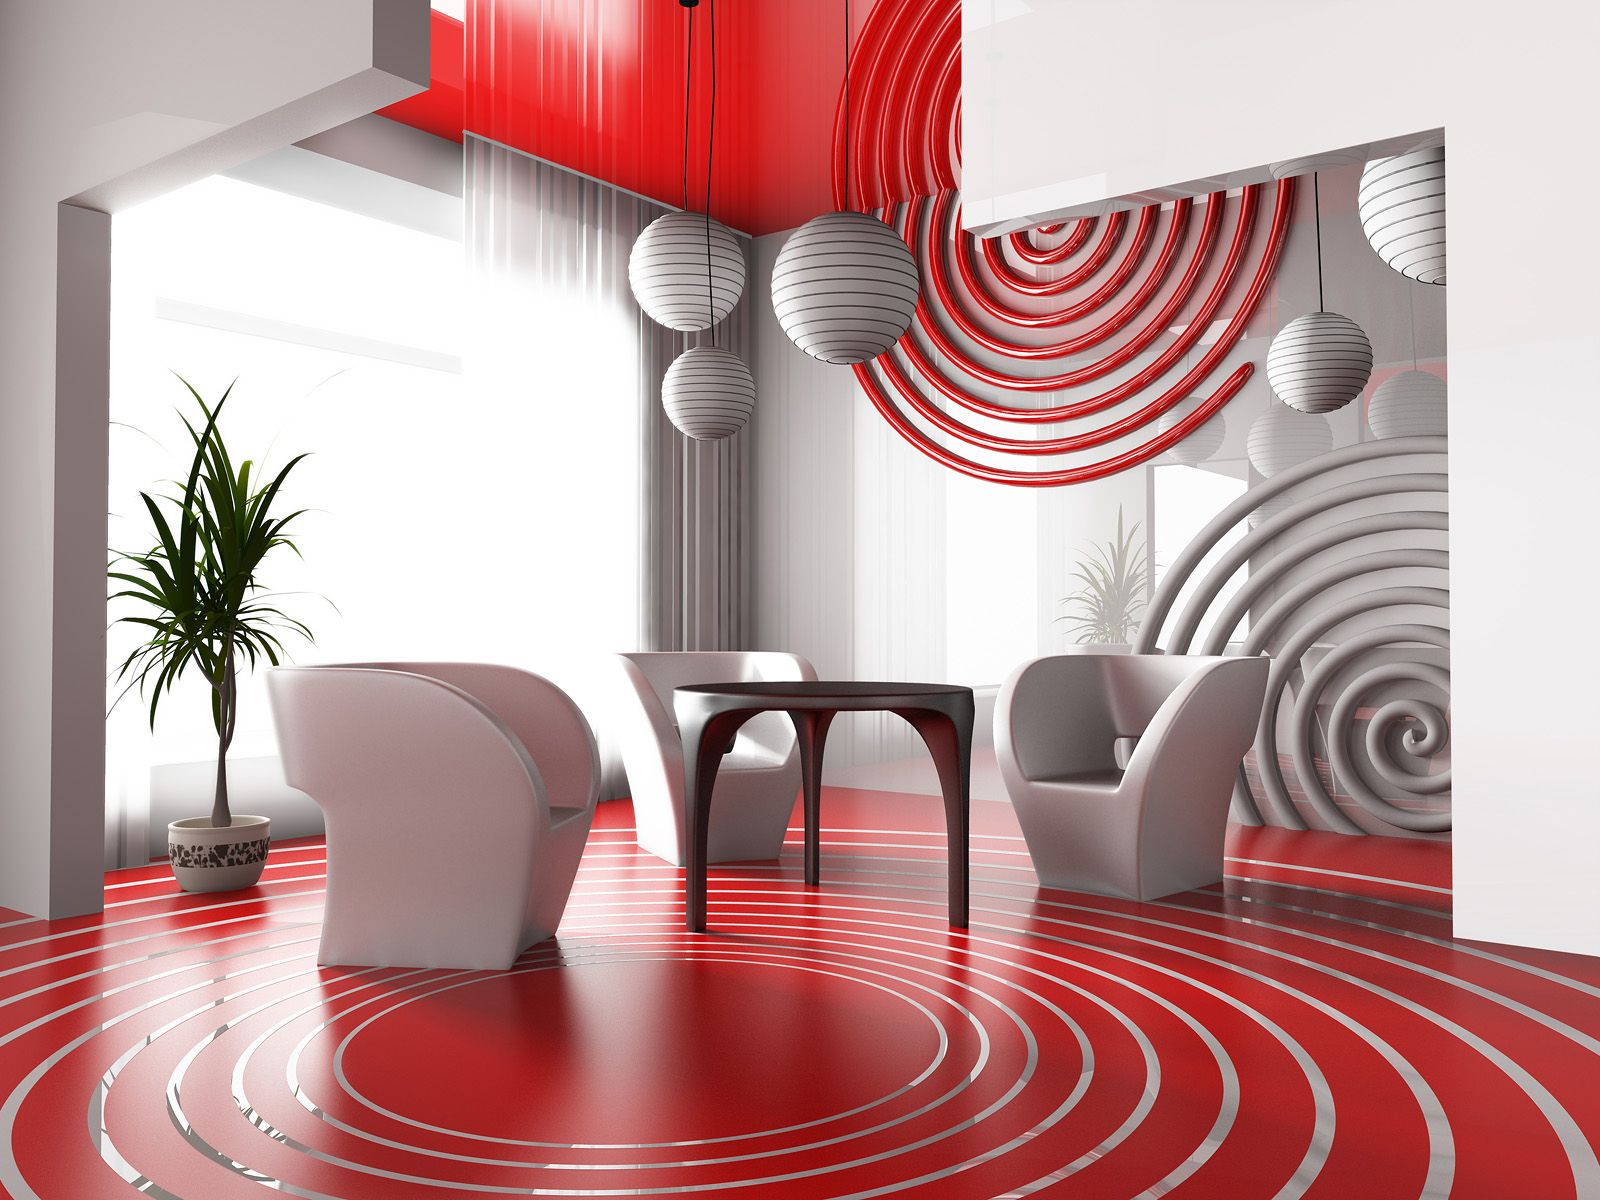 Reception, creative, trendy, red and white, spheres and circles